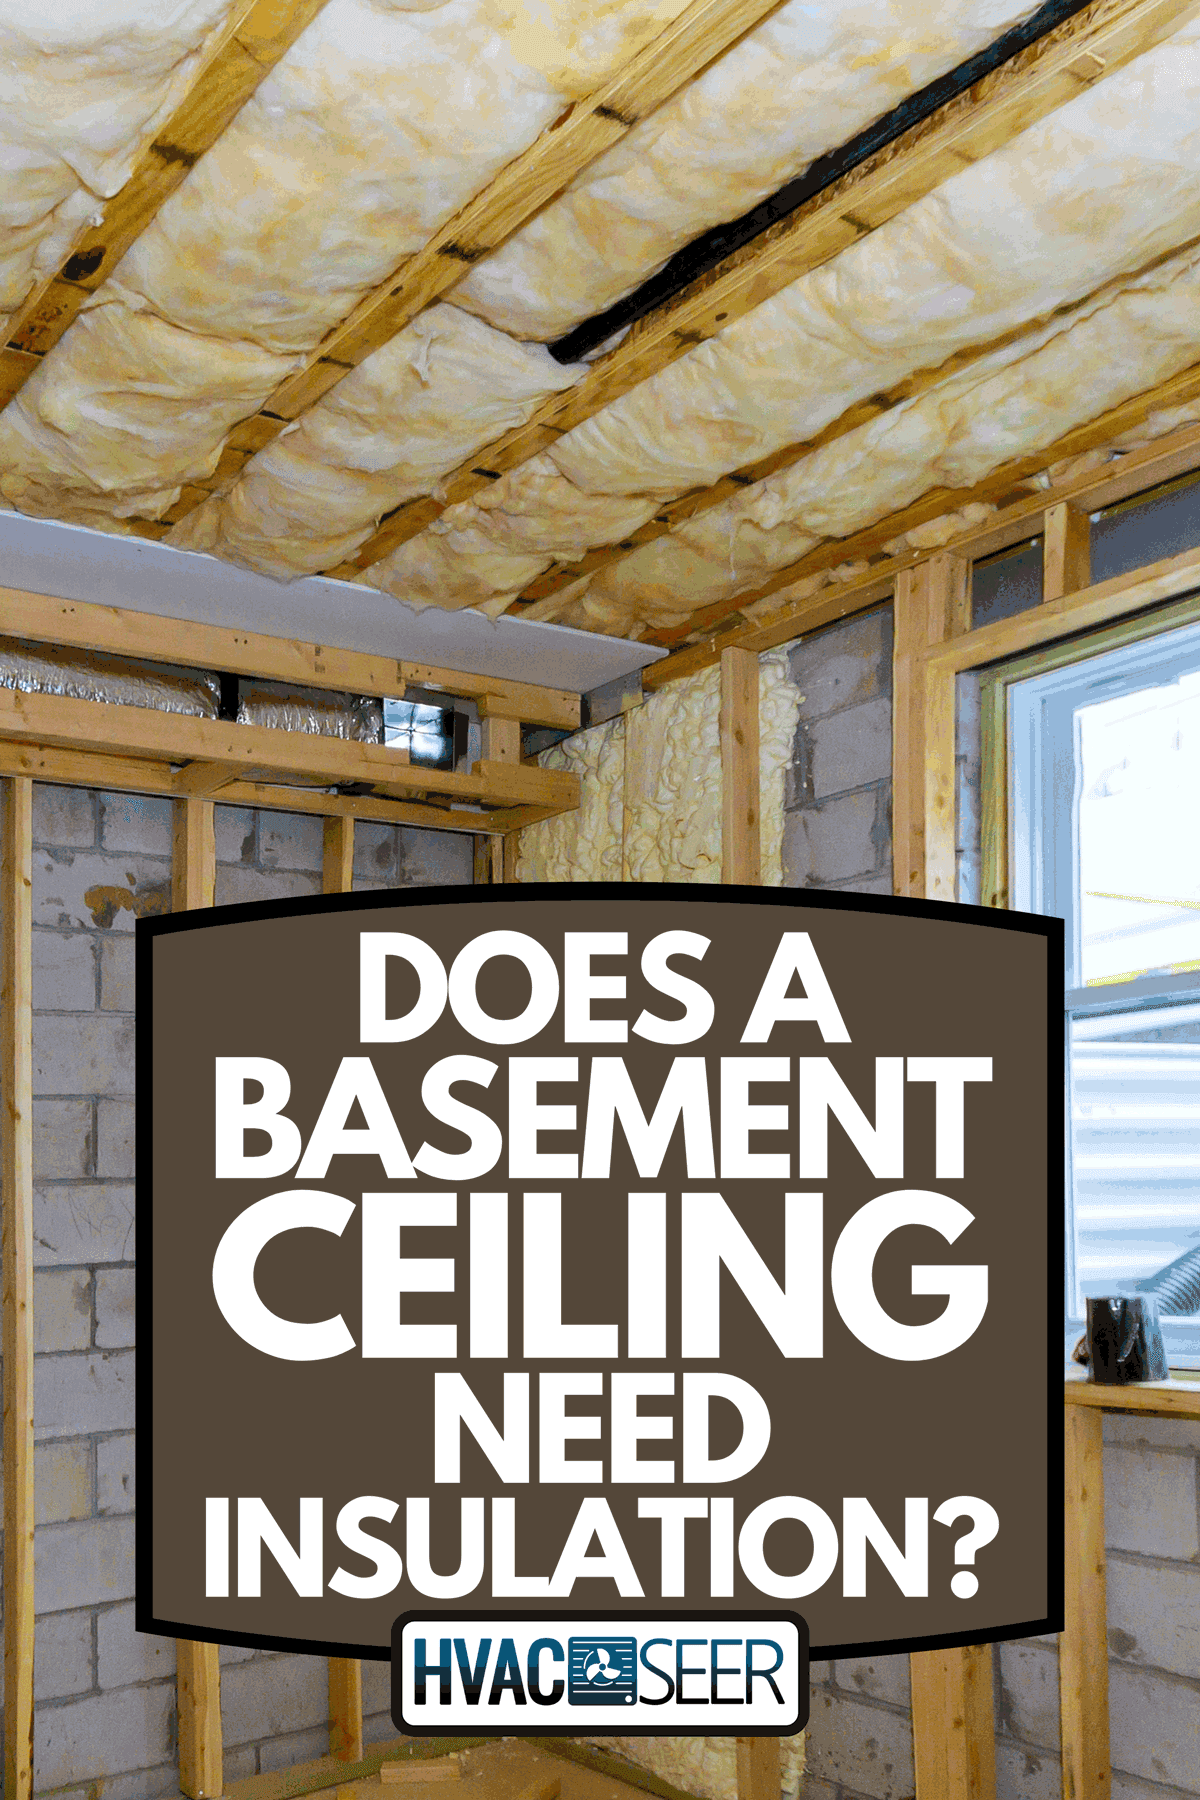 An underground under construction of basement foam for thermal insulation of walls of a wooden house, Does A Basement Ceiling Need Insulation?